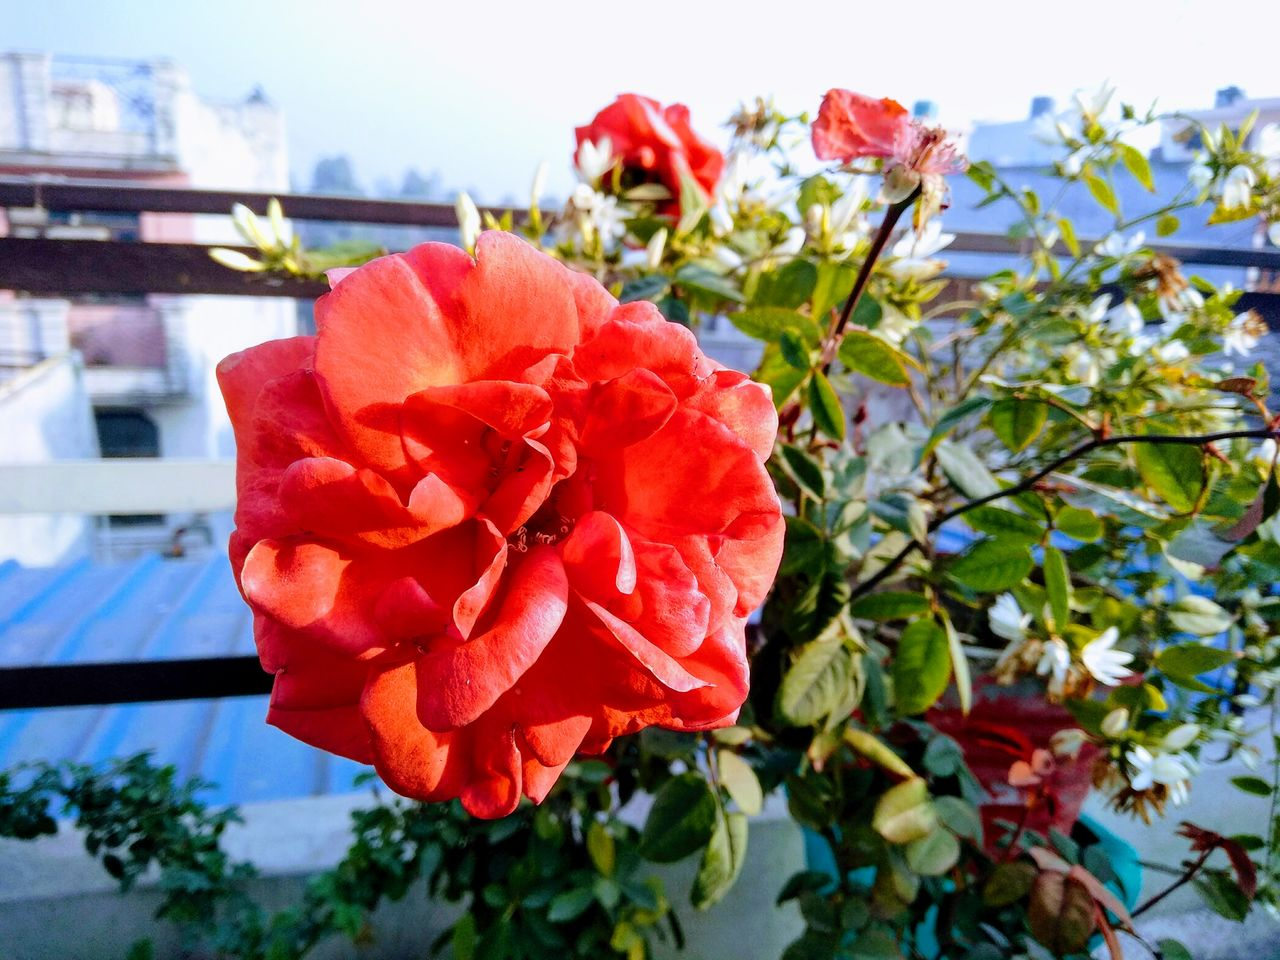 flower, petal, fragility, freshness, nature, beauty in nature, growth, flower head, red, rose - flower, blooming, day, no people, outdoors, focus on foreground, plant, close-up, sky